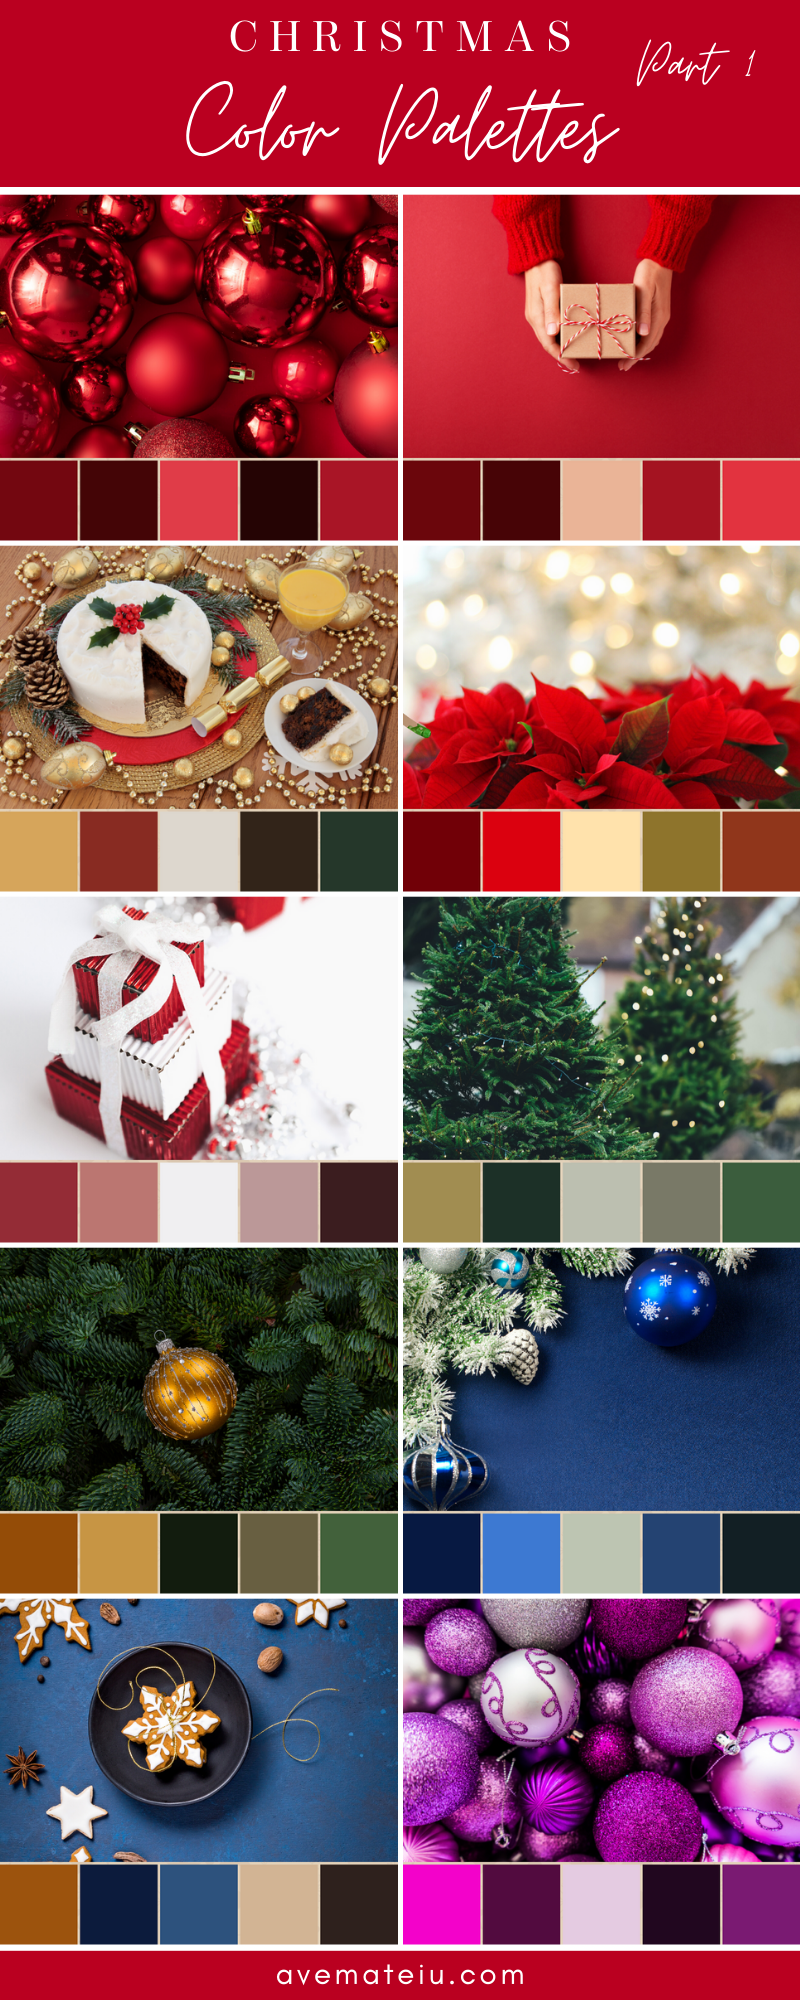 Christmas Color Schemes For 2020 WordPress.in 2020 | Christmas color palette, Christmas colour